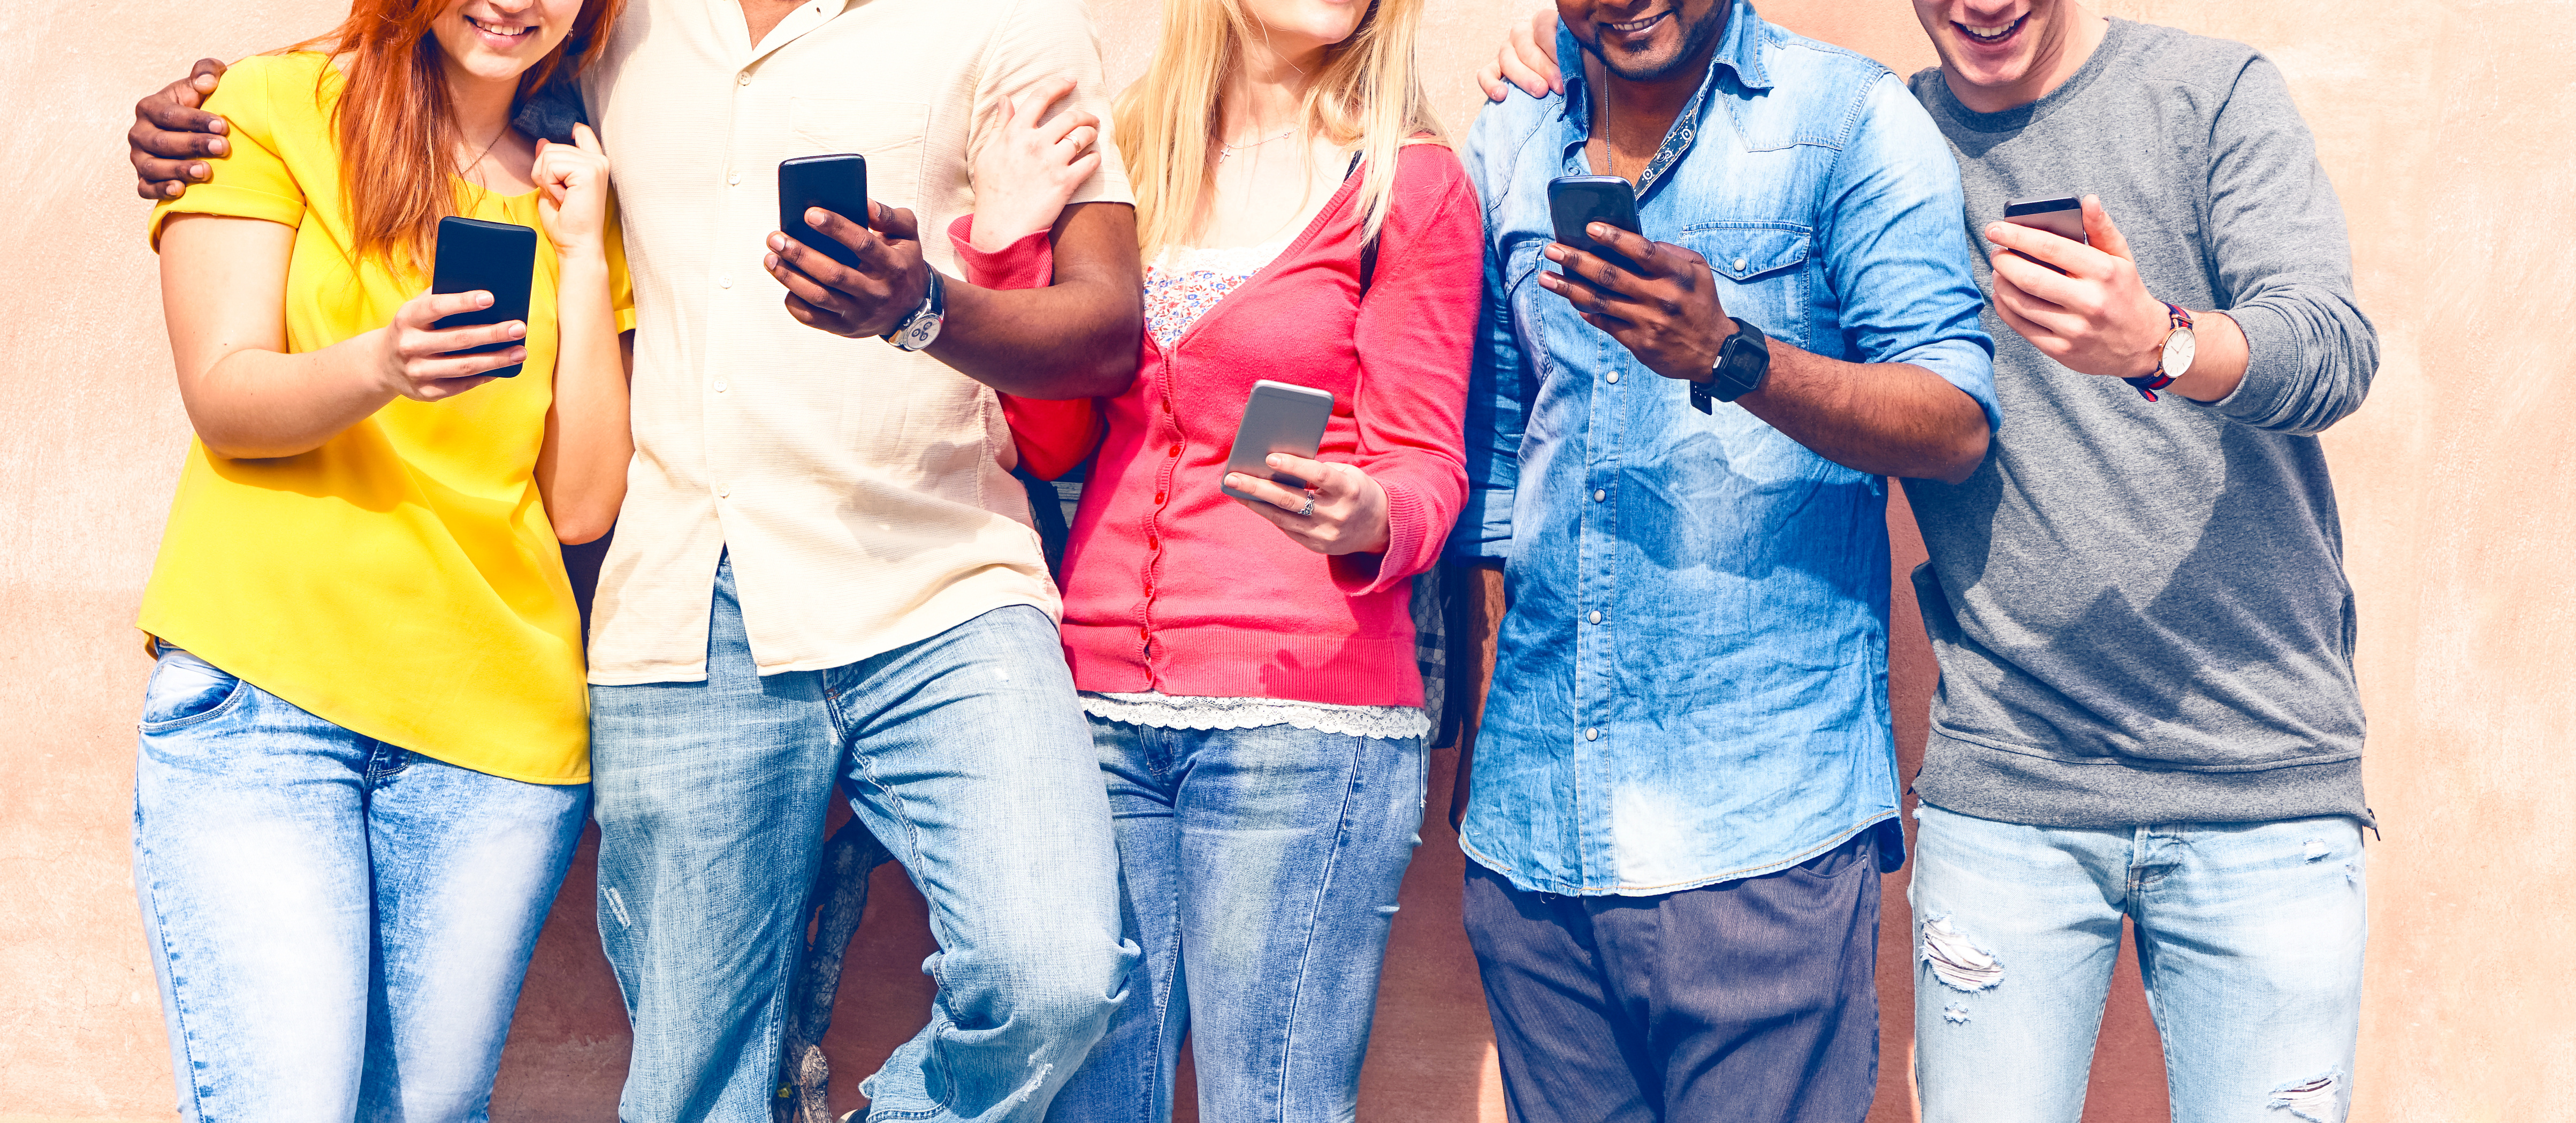 Teenagers texting mobile phone messages row on pink background - Multiracial friends holding smartphone outdoors - Modern communication concept - Image